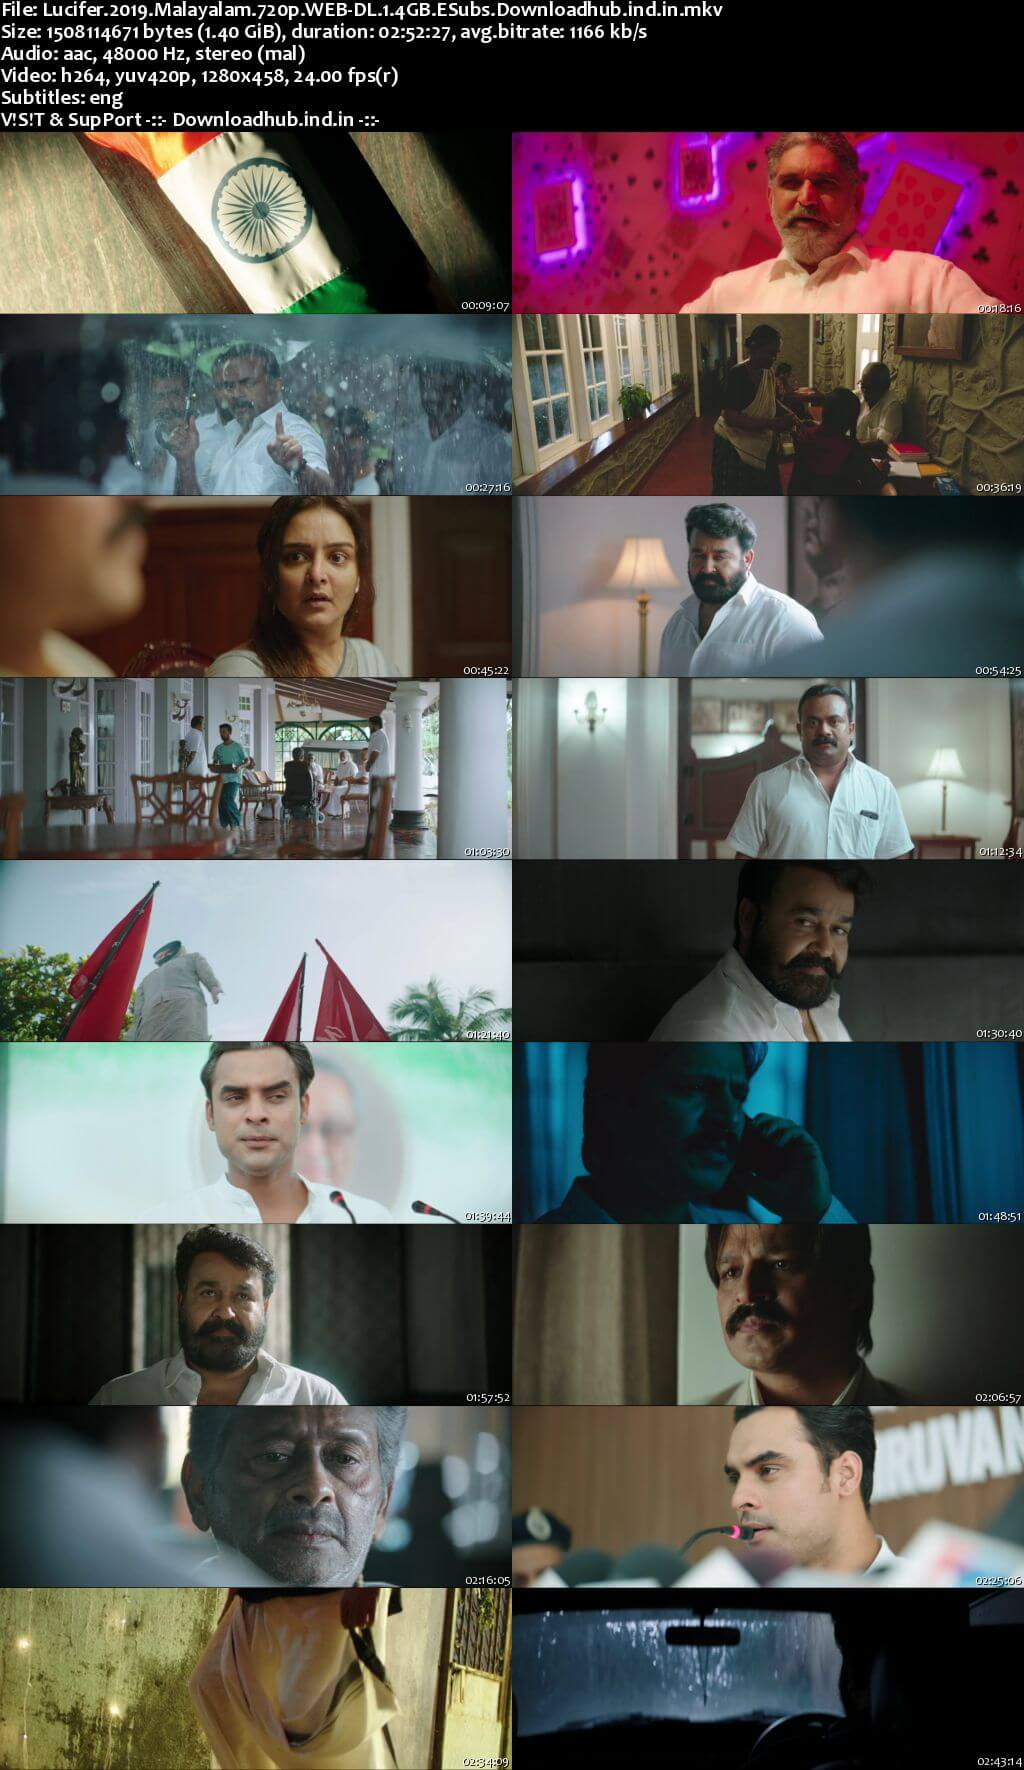 Lucifer 2019 Malayalam 720p HDRip ESubs